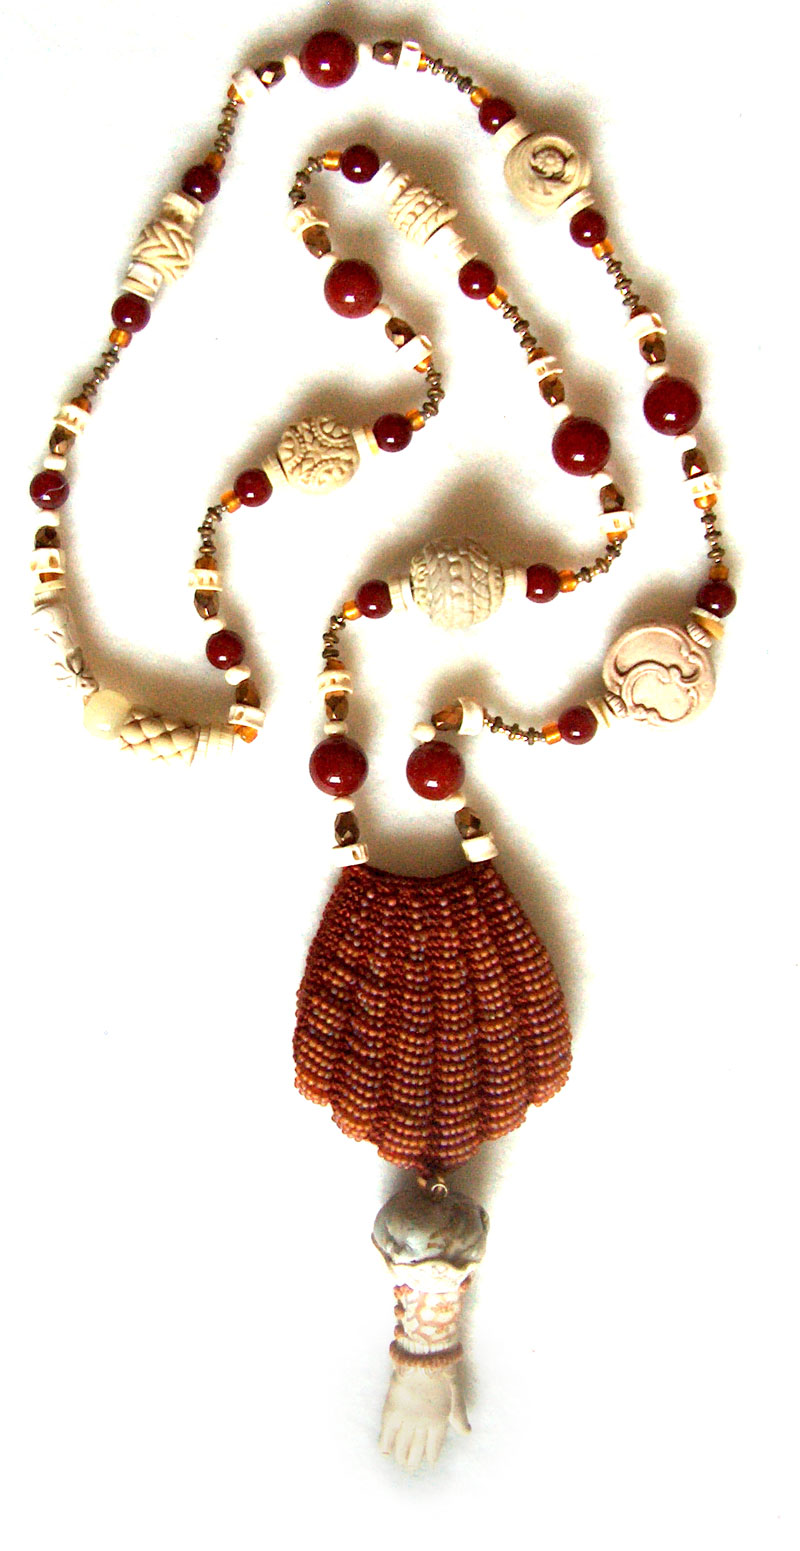 polymer clay and carnelian necklace with knit bag and polymer clay hand